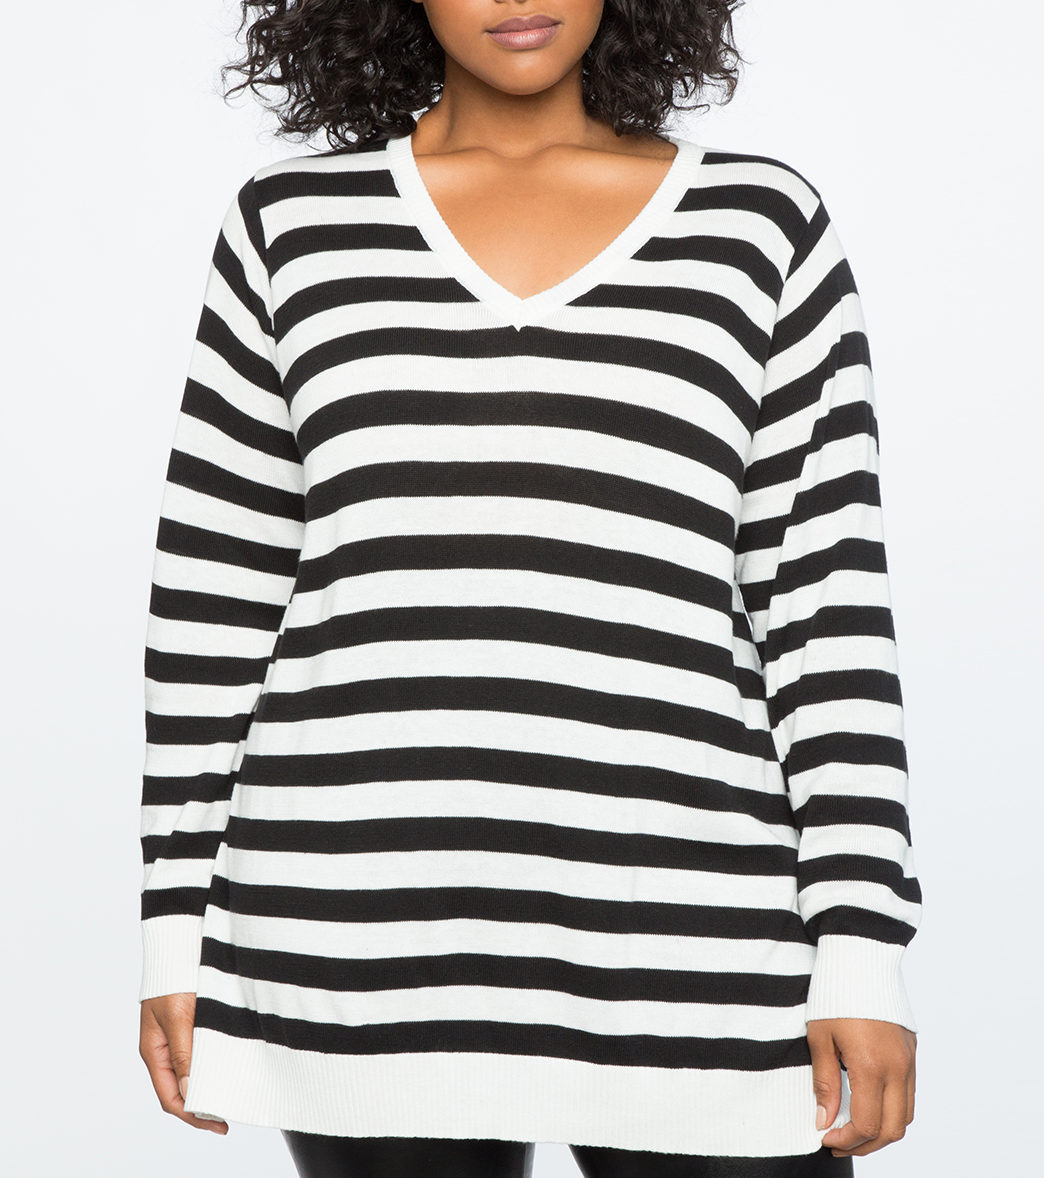 eloquii striped sweater